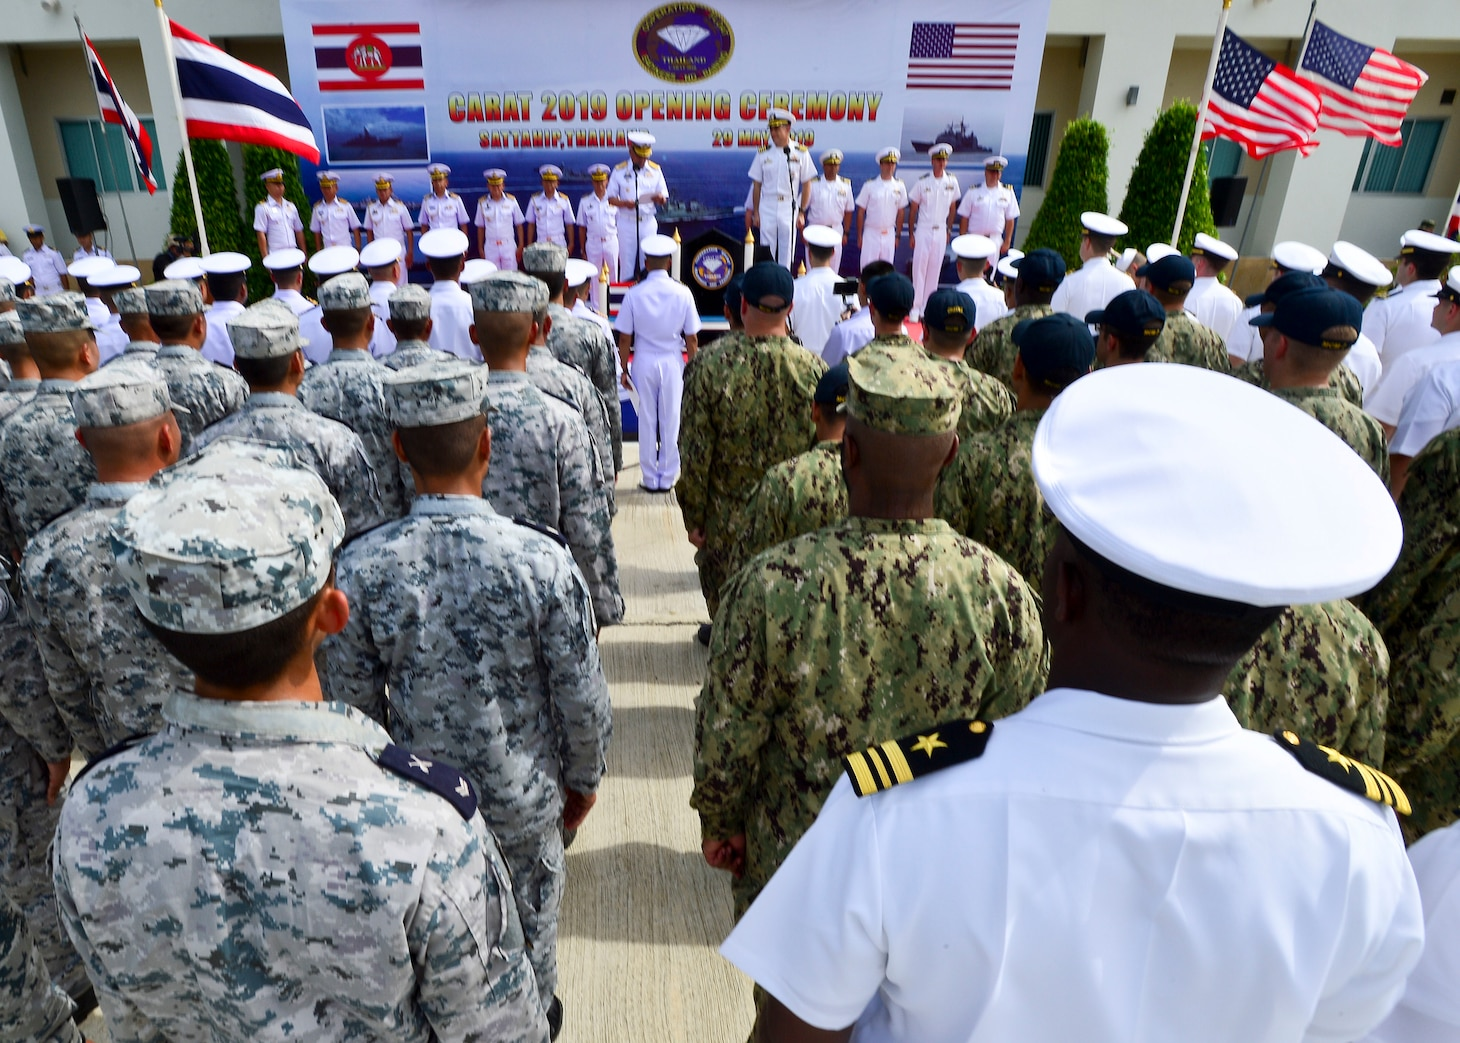 This year marks the 25th iteration of CARAT, a multinational exercise series designed to enhance U.S. and partner navies' abilities to operate together in response to traditional and non-traditional maritime security challenges in the Indo-Pacific region.